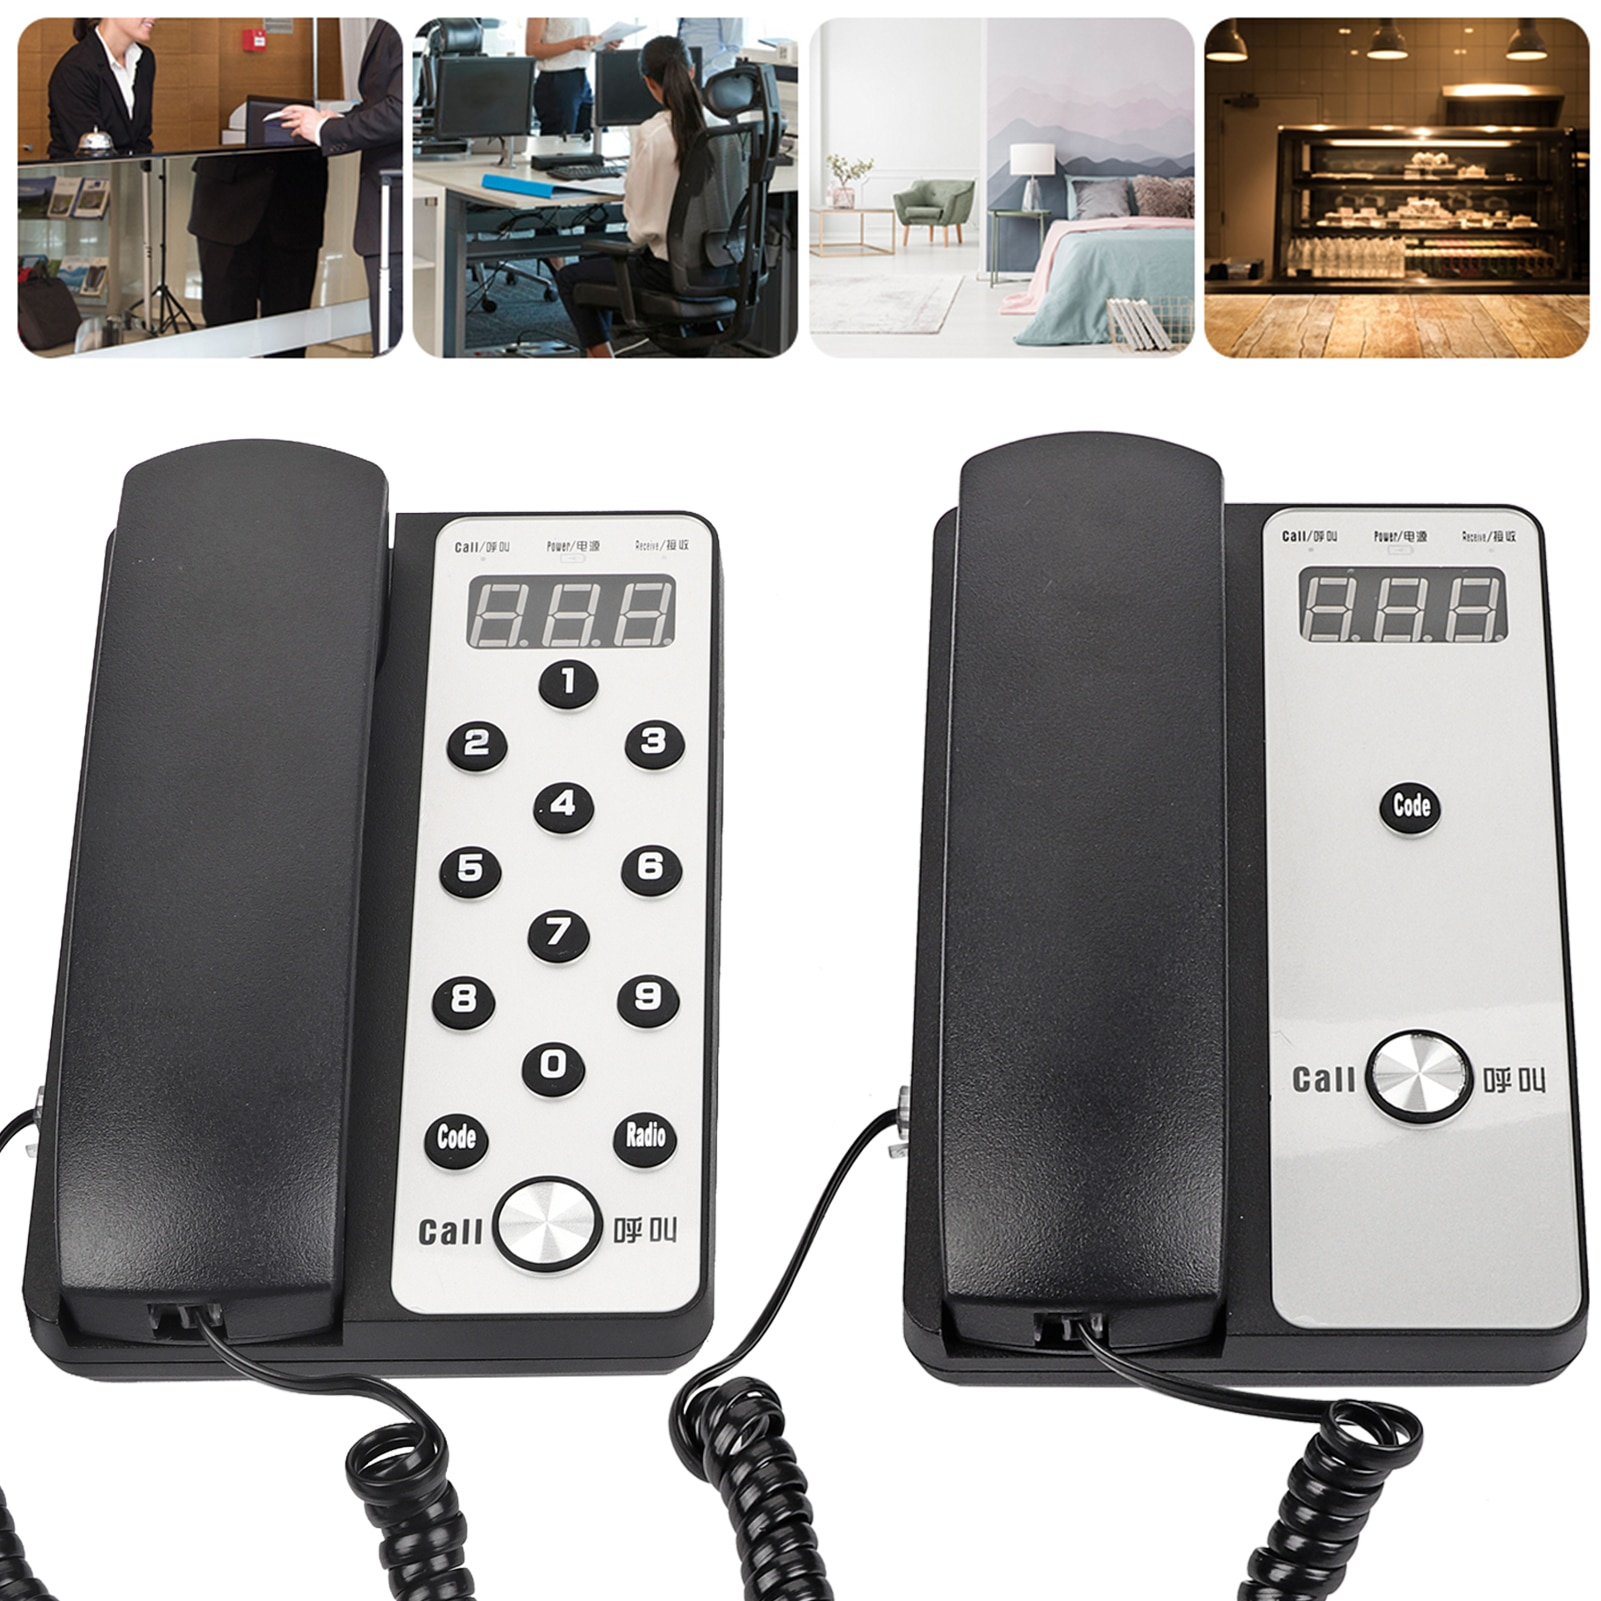 New Wireless Intercom System Audio Secure Interphone Handsets Expandable for Warehouse Office Hotel Interphone Maison Home Phone enlarge